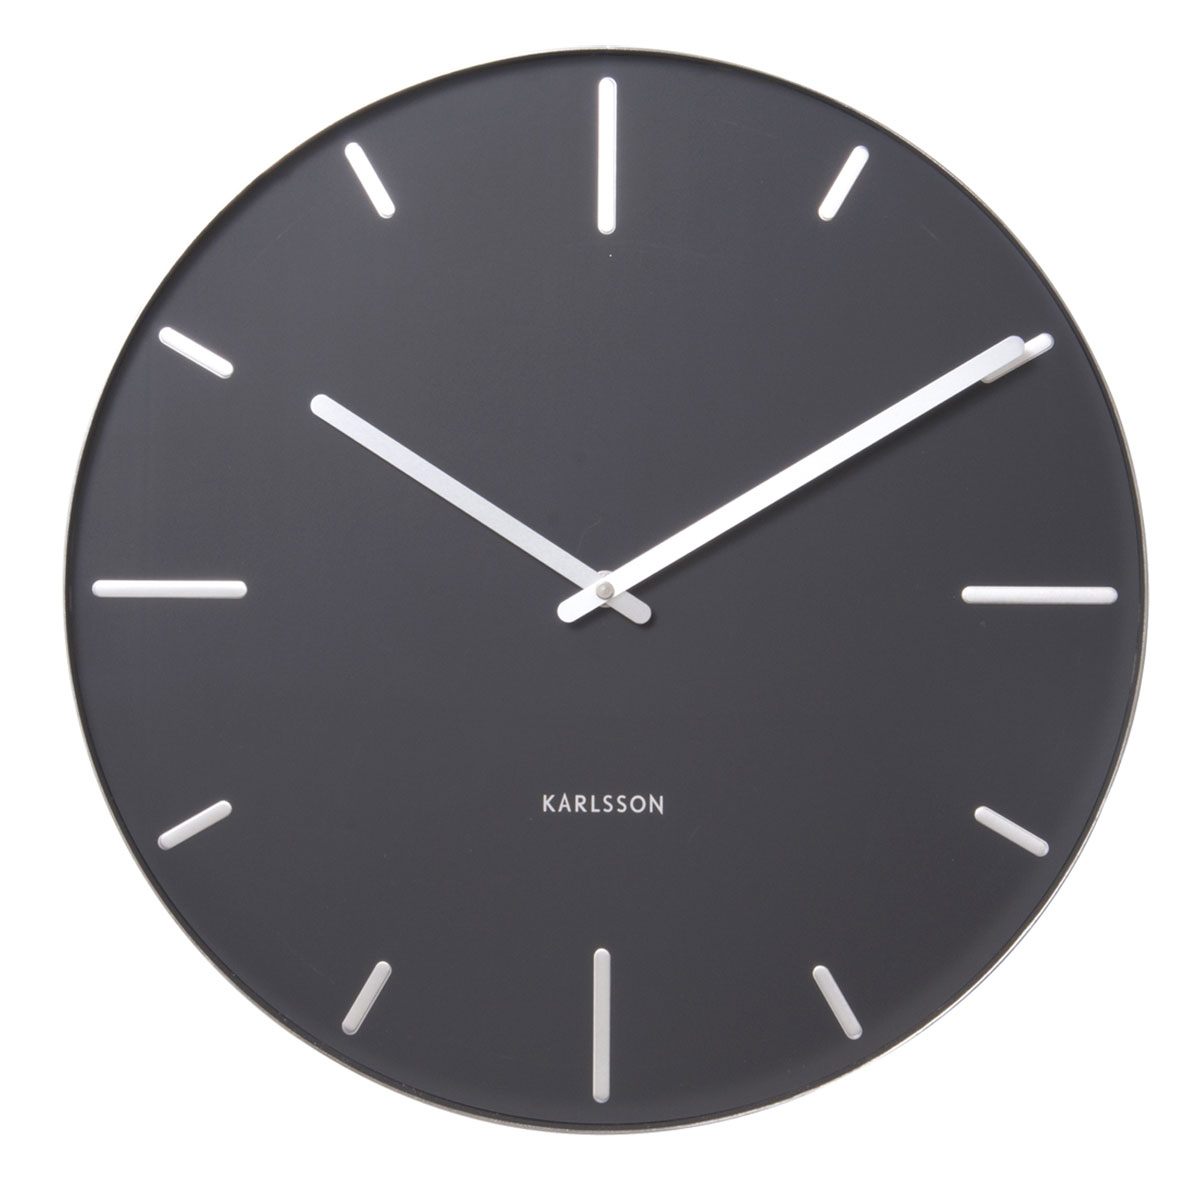 horloge de bureau london clock 24395 horloge murale. Black Bedroom Furniture Sets. Home Design Ideas